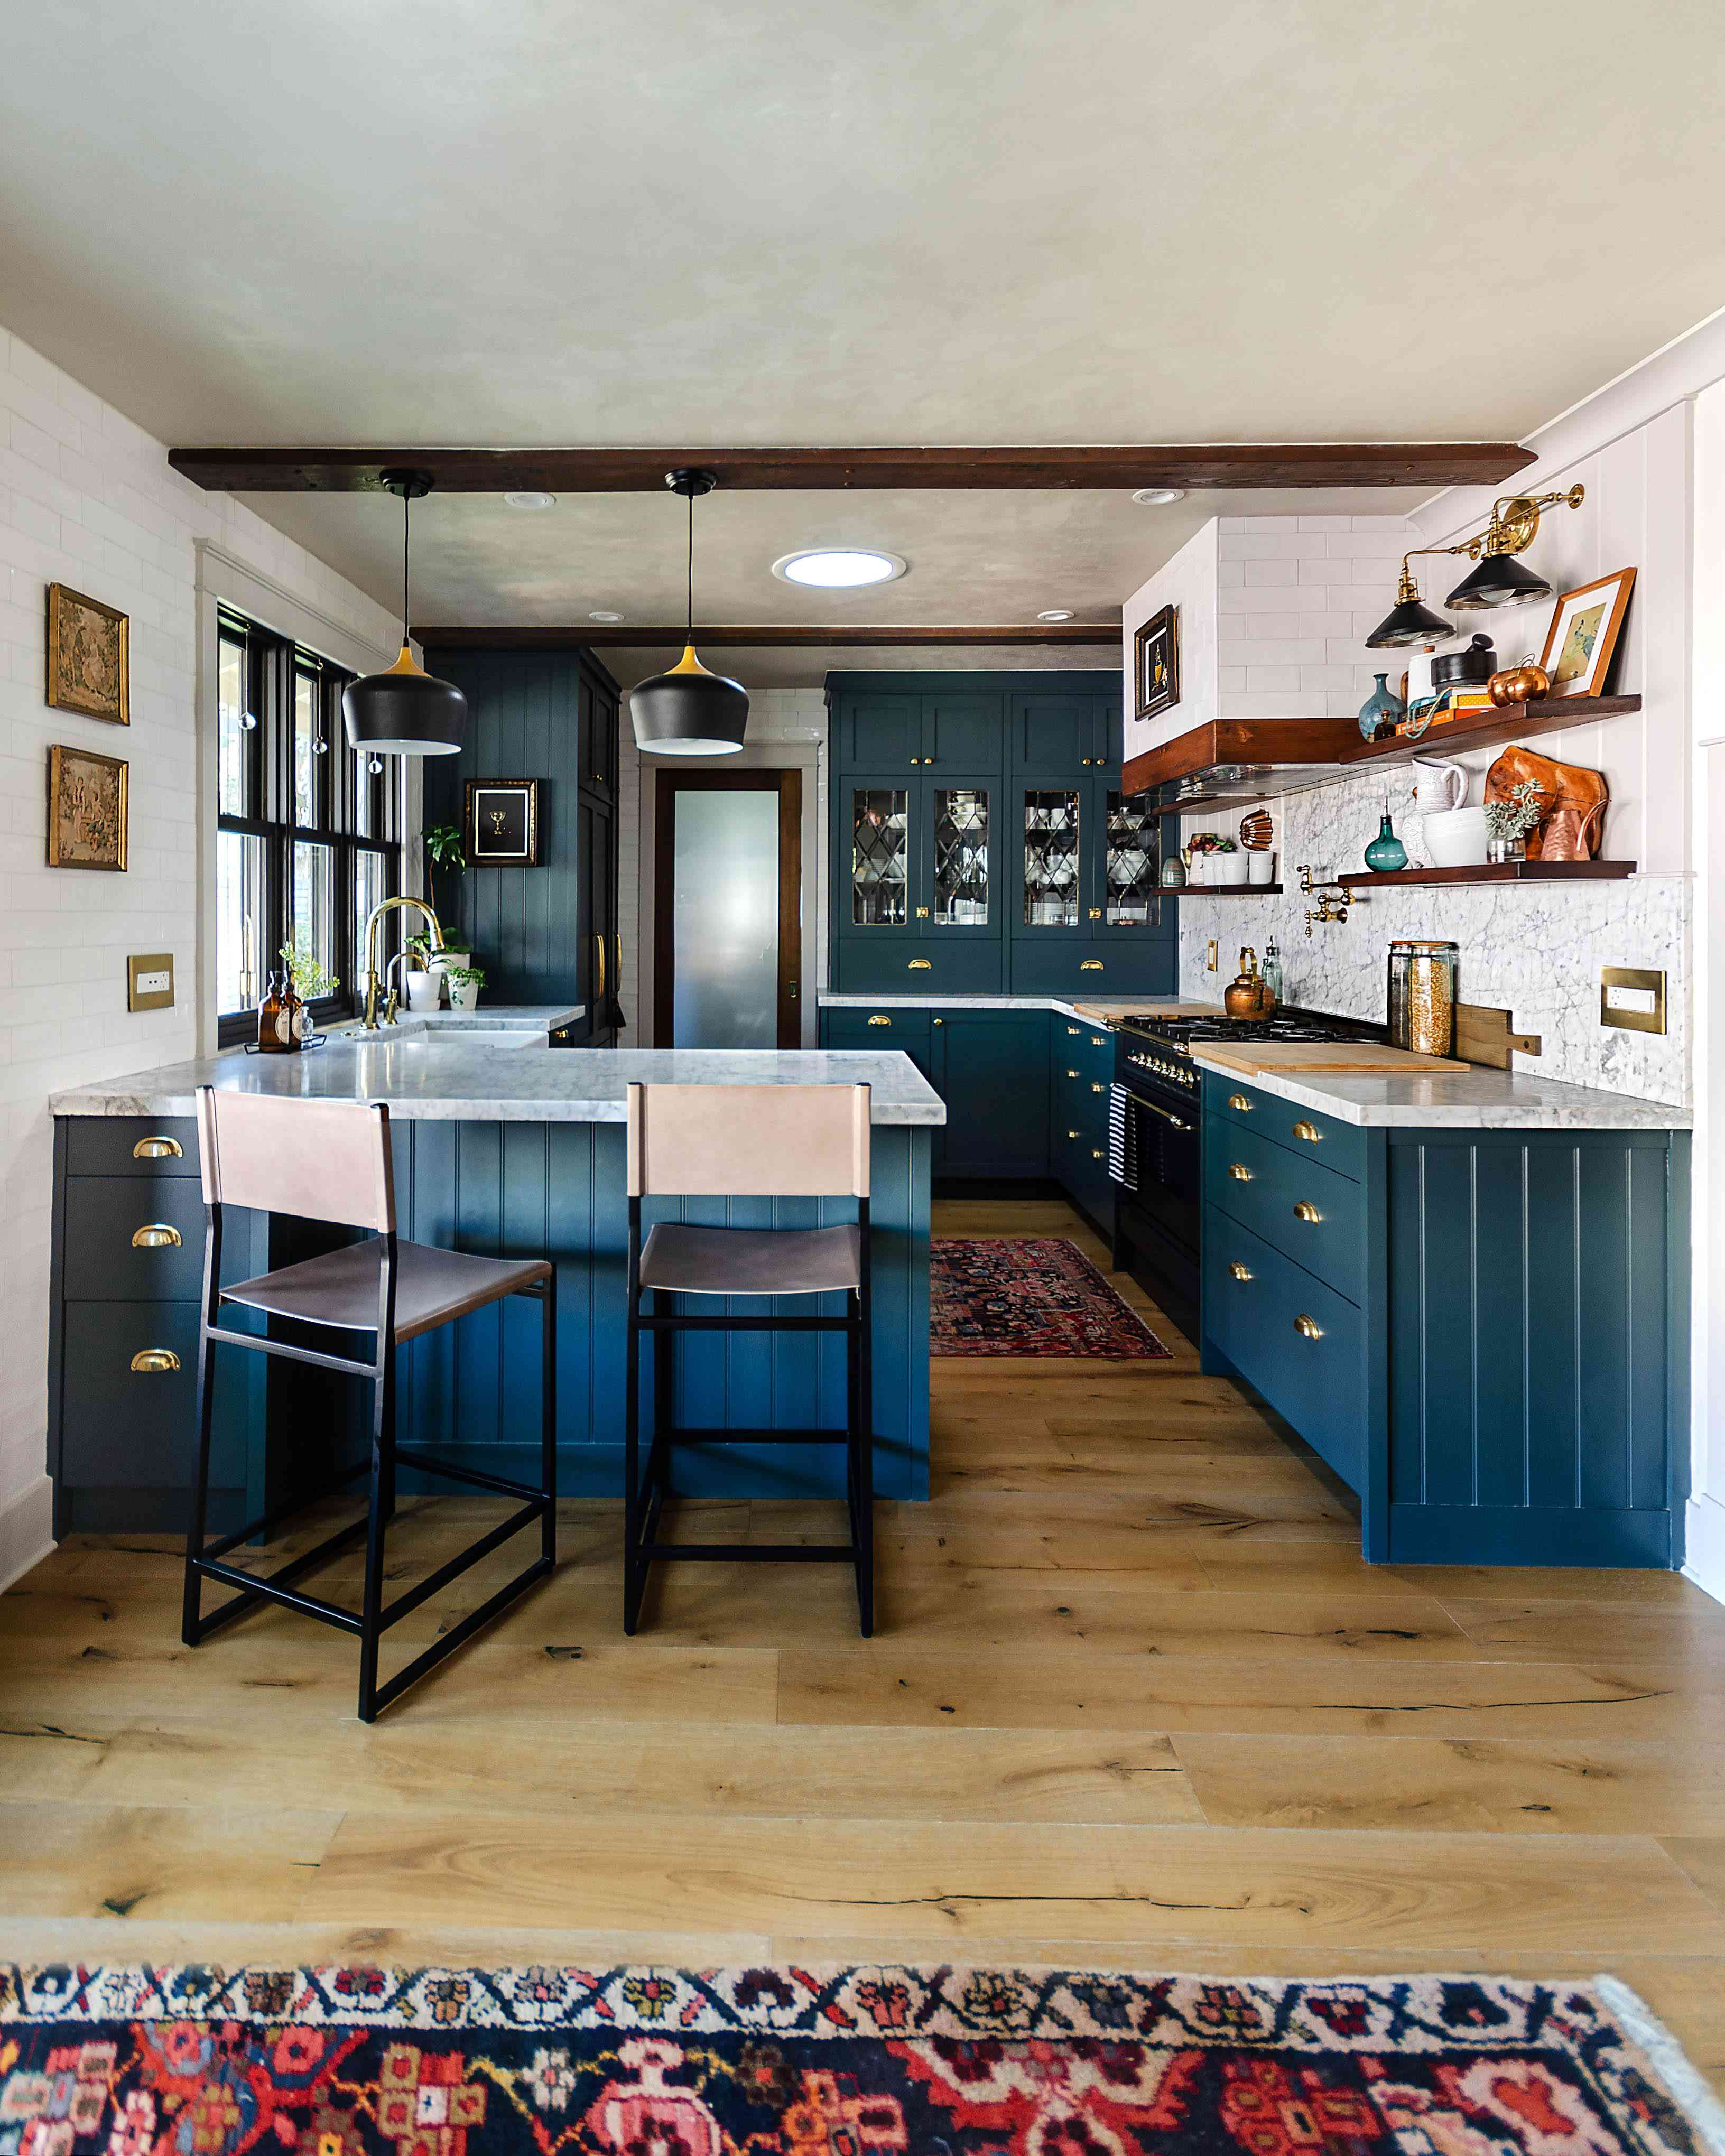 A kitchen lined with blue IKEA cabinets